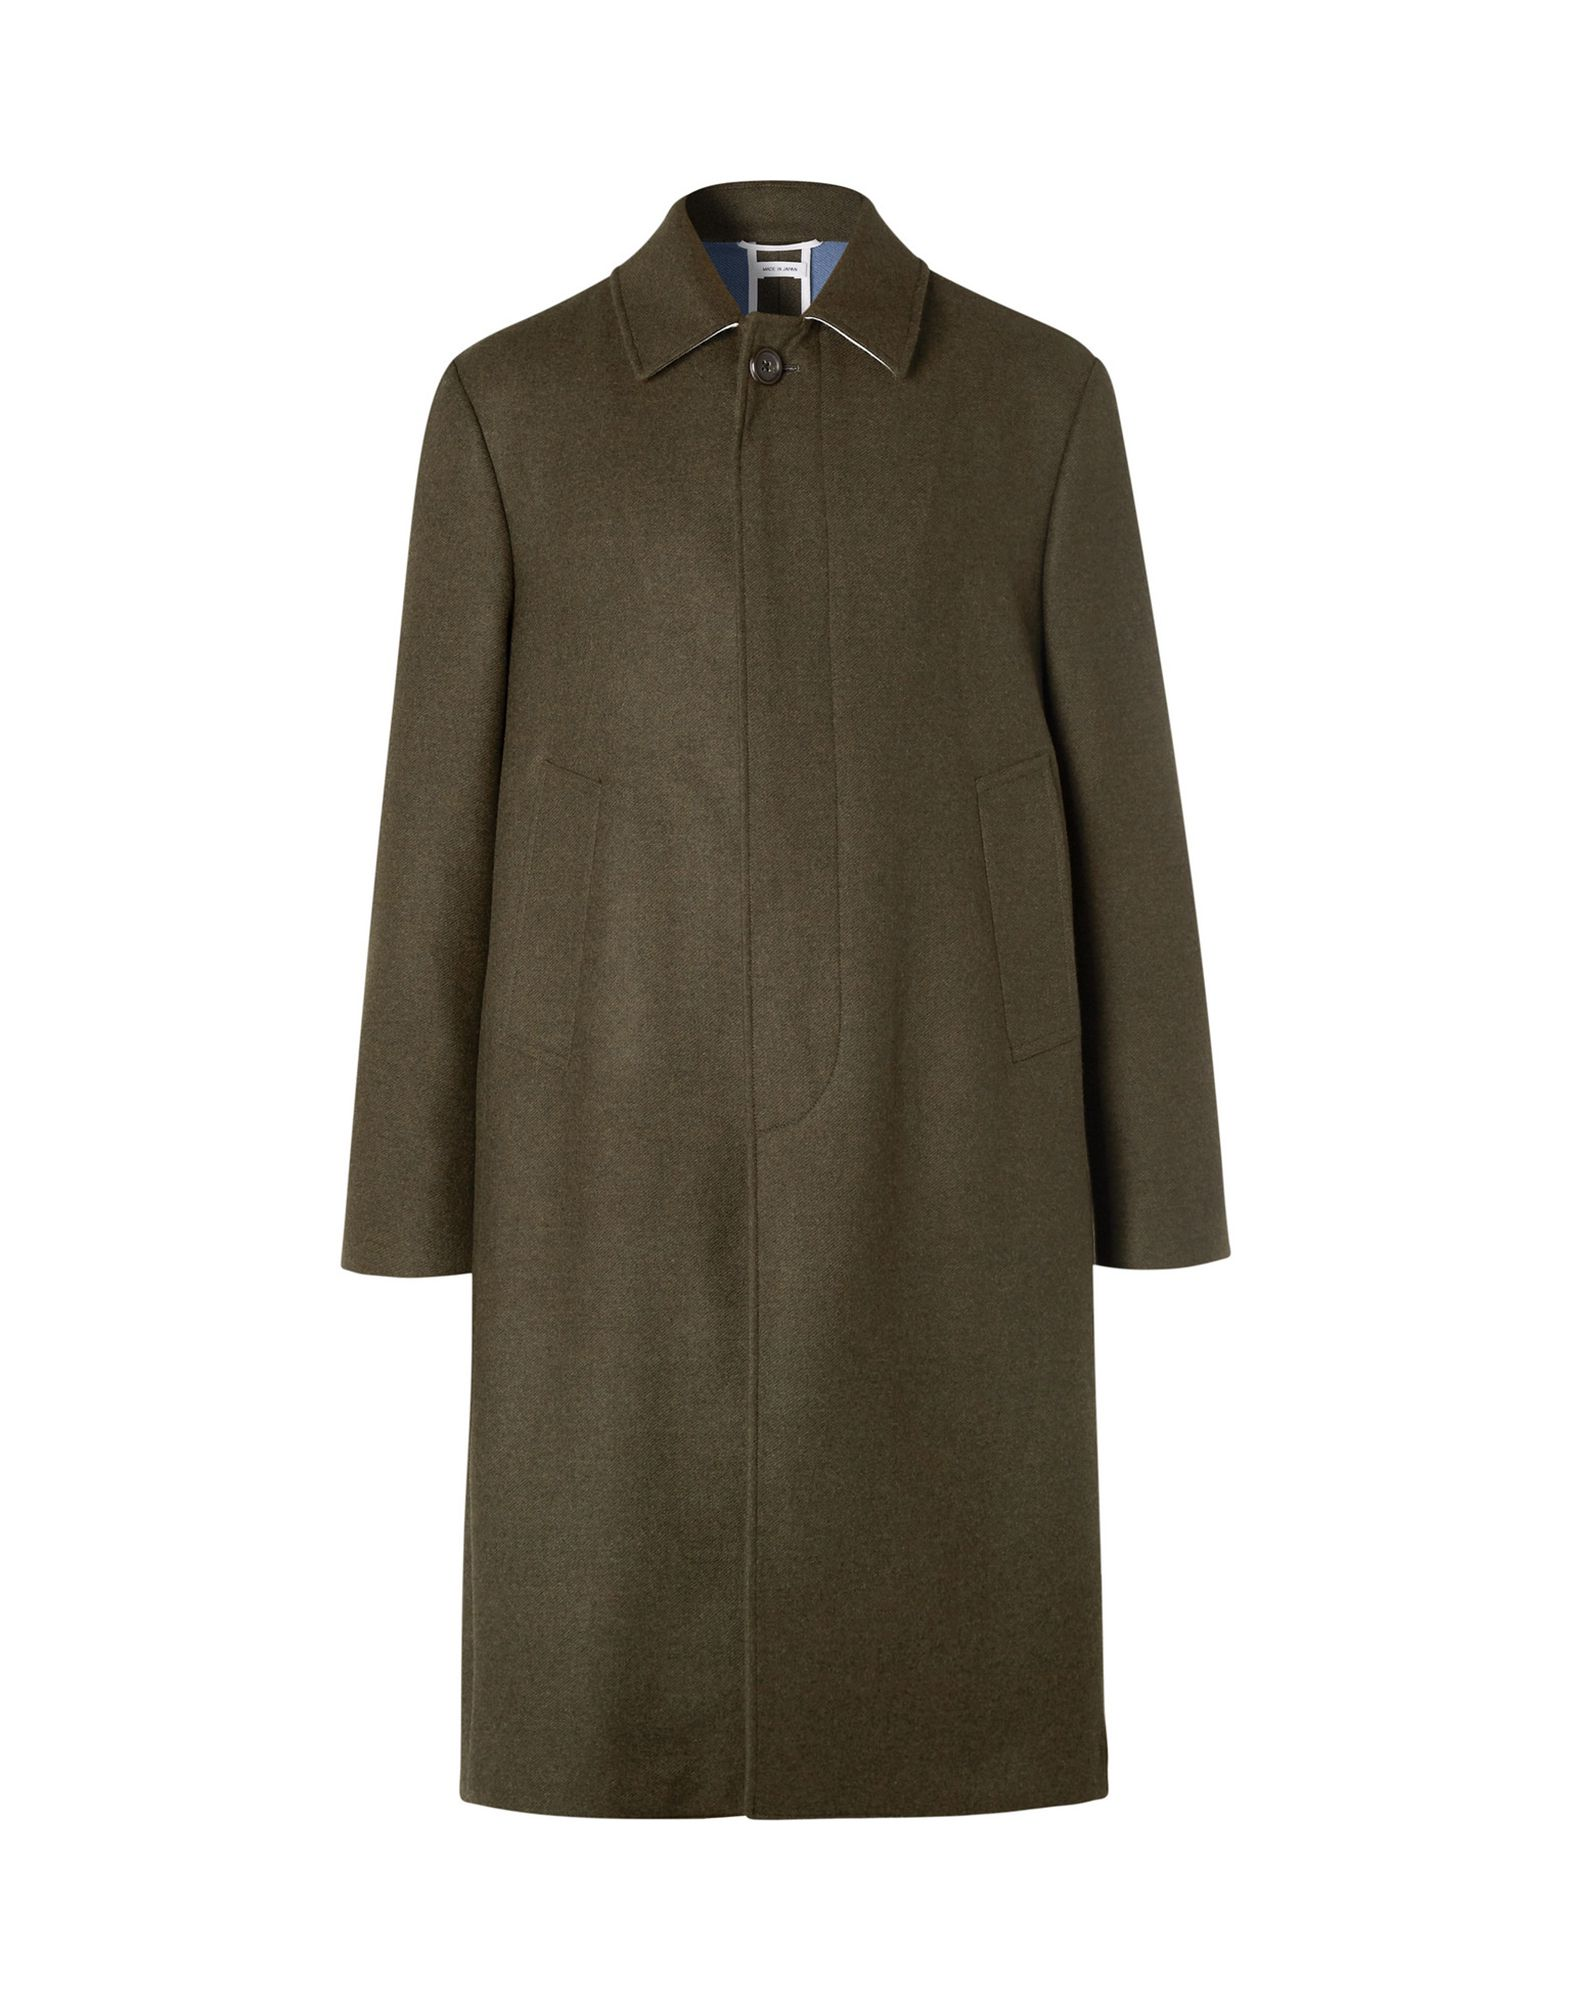 THOM BROWNE Coats. baize, logo, basic solid color, single-breasted, button closing, lapel collar, multipockets, long sleeves, rear slit, unlined. 100% Wool, Cotton